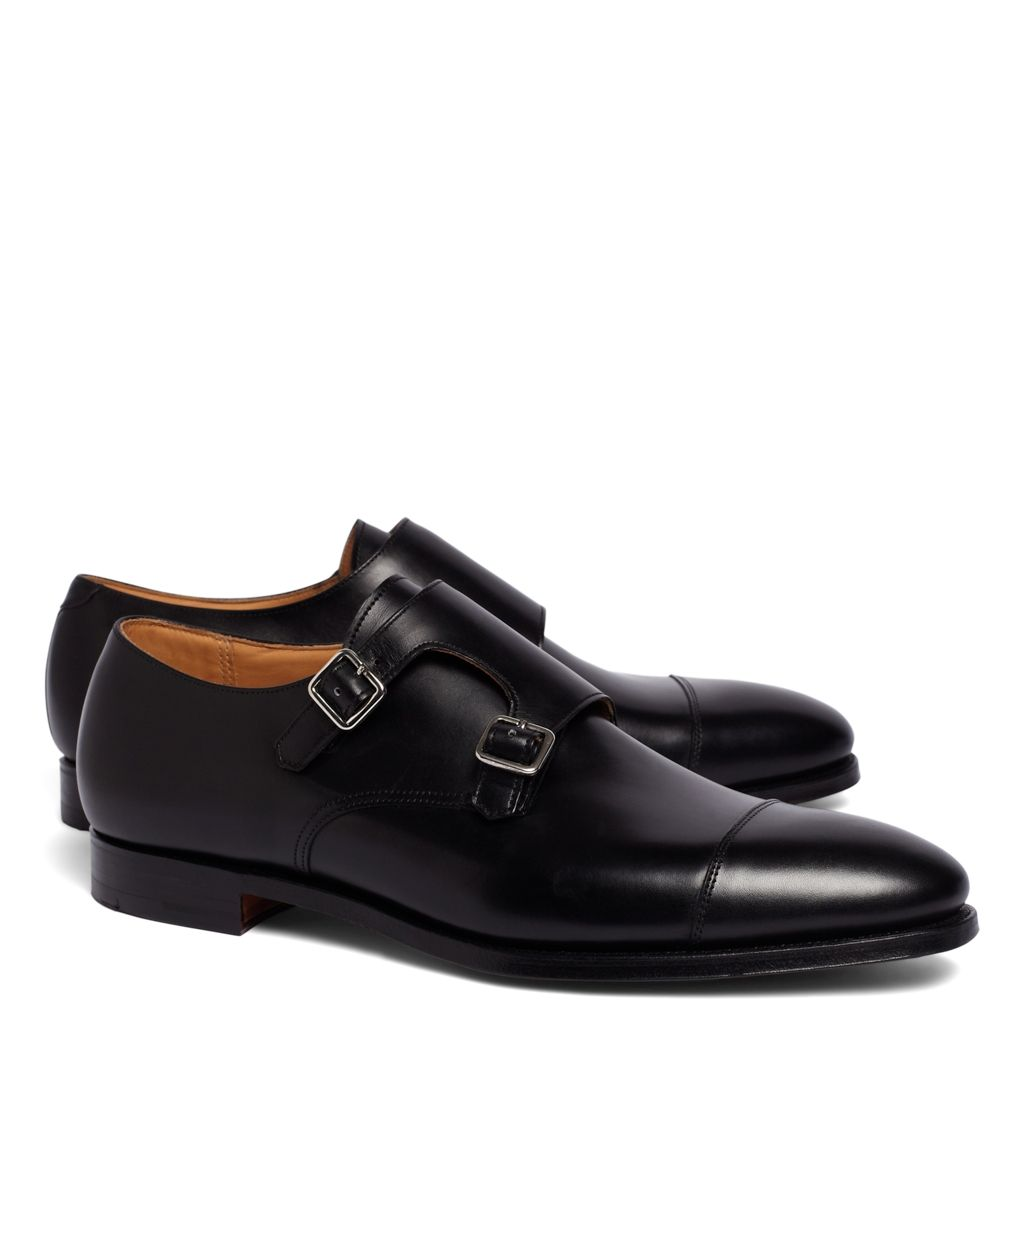 Men's Peal and Co. Double Monk Strap Shoes | Brooks Brothers